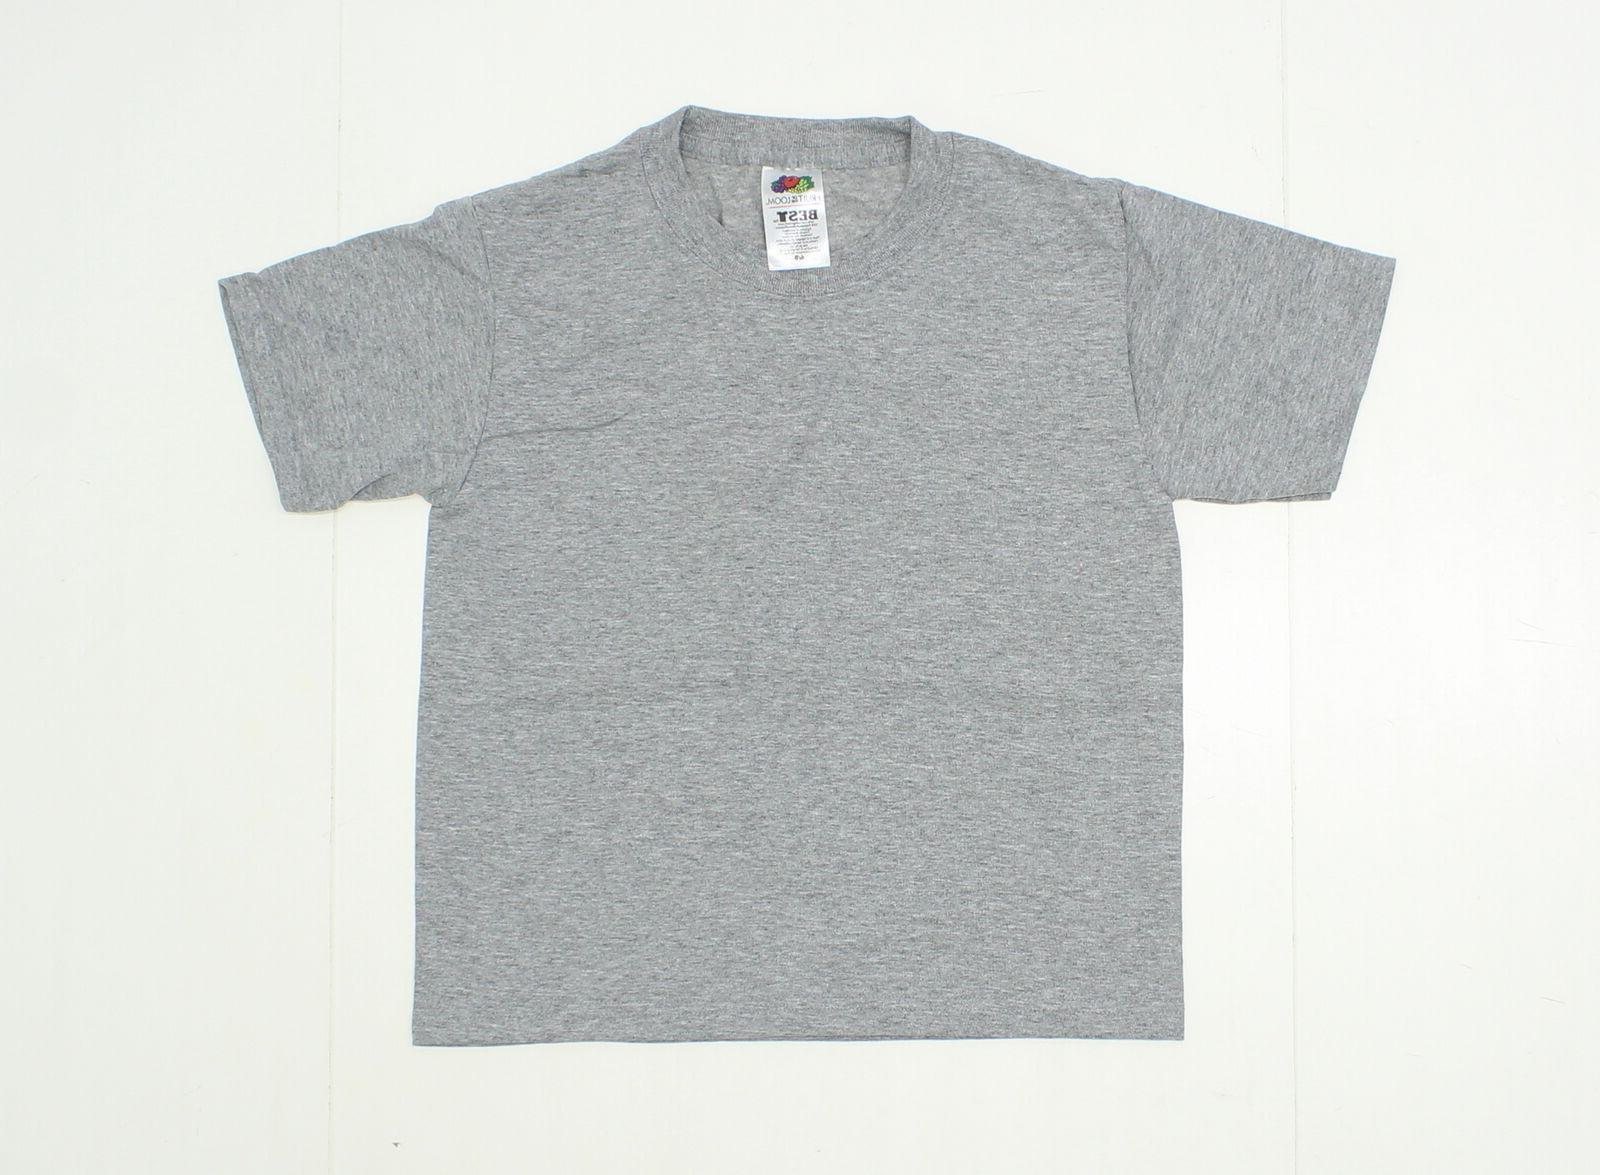 new youth short sleeve t shirt sports